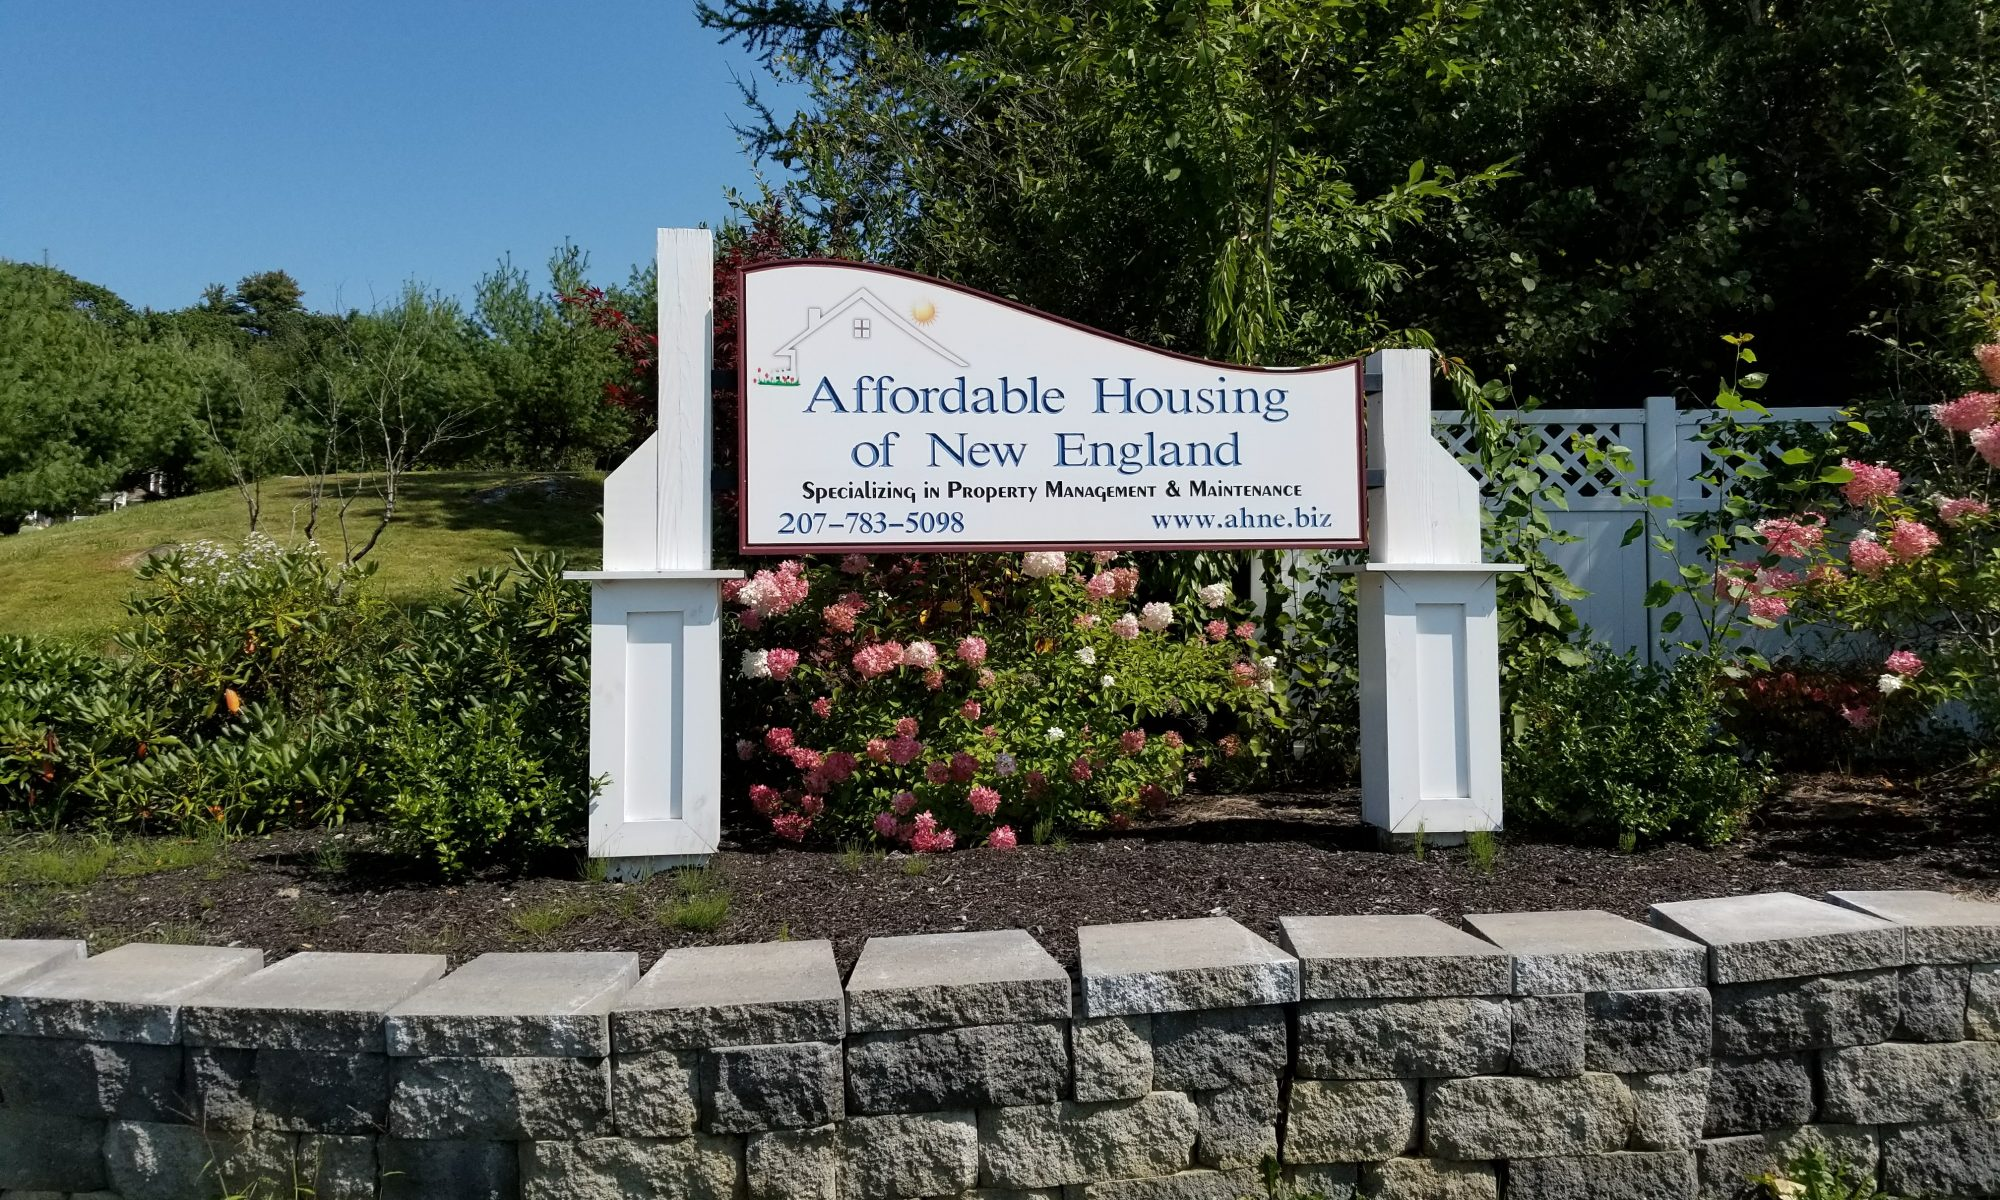 Affordable Housing of New England